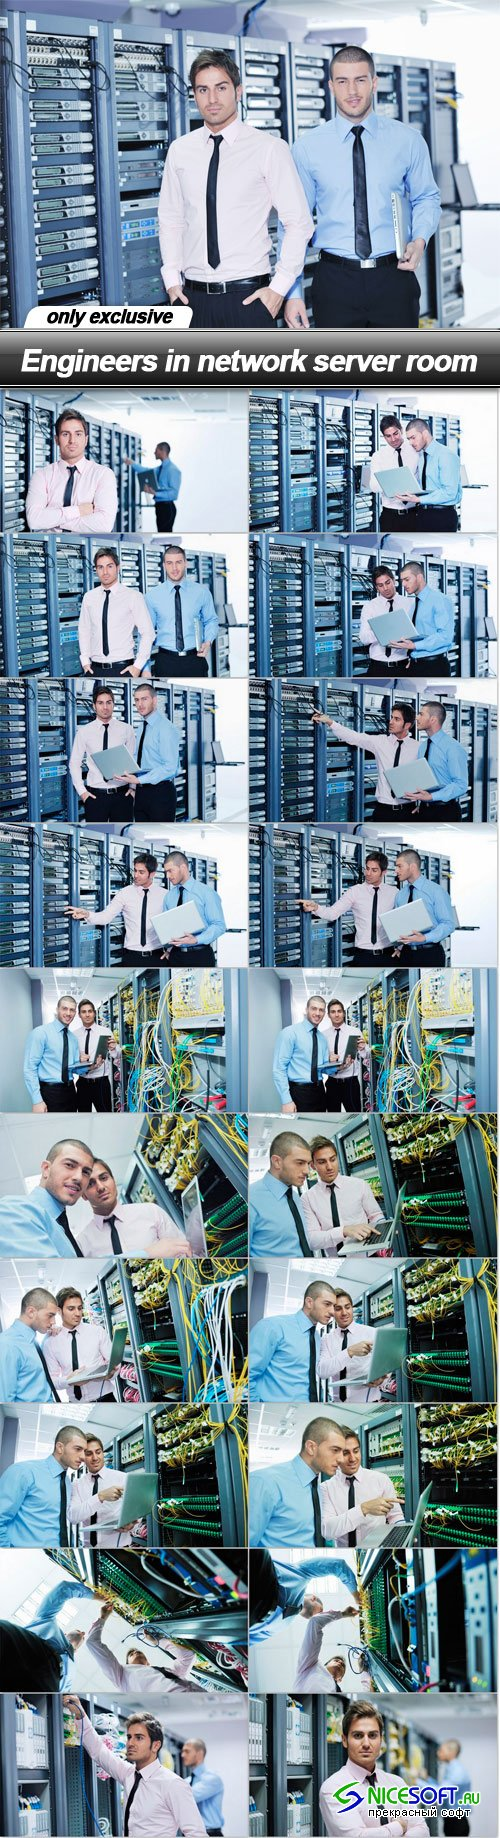 Engineers in network server room